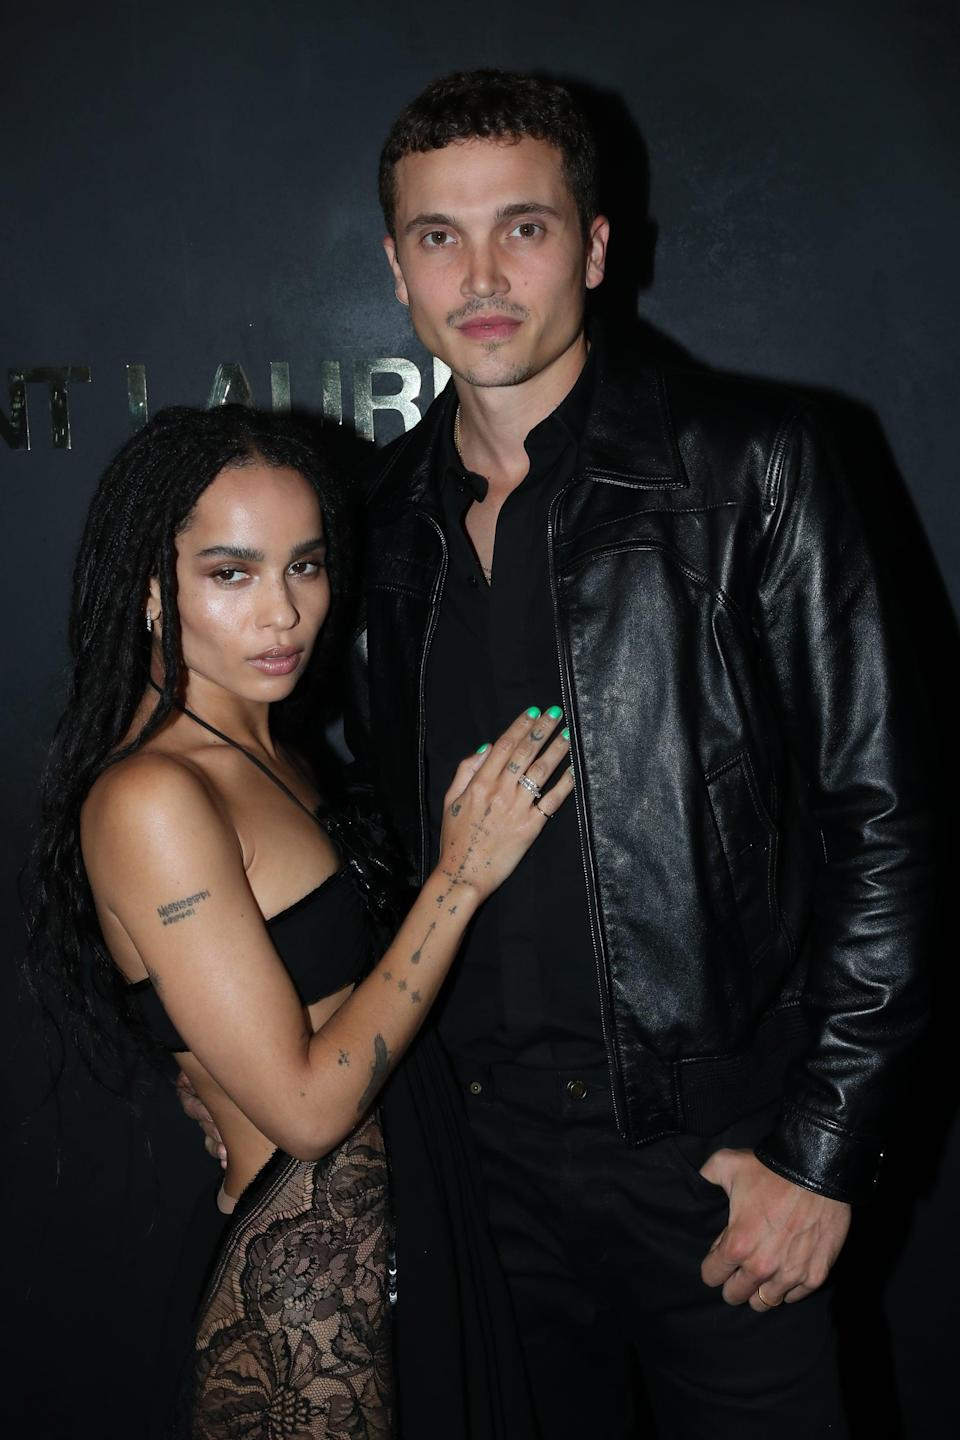 """<p><a href=""""https://www.popsugar.com/celebrity/zoe-kravitz-and-karl-glusman-break-up-48088027"""" class=""""link rapid-noclick-resp"""" rel=""""nofollow noopener"""" target=""""_blank"""" data-ylk=""""slk:Zoë technically filed for divorce"""">Zoë technically filed for divorce</a> from Karl after a year of marriage in December 2020, but it wasn't until January that <a href=""""https://people.com/movies/zoe-kravitz-files-for-divorce-from-karl-glusman/"""" class=""""link rapid-noclick-resp"""" rel=""""nofollow noopener"""" target=""""_blank"""" data-ylk=""""slk:her rep confirmed the news"""">her rep confirmed the news</a> to <strong>People</strong>. No other details were revealed at the time.</p>"""